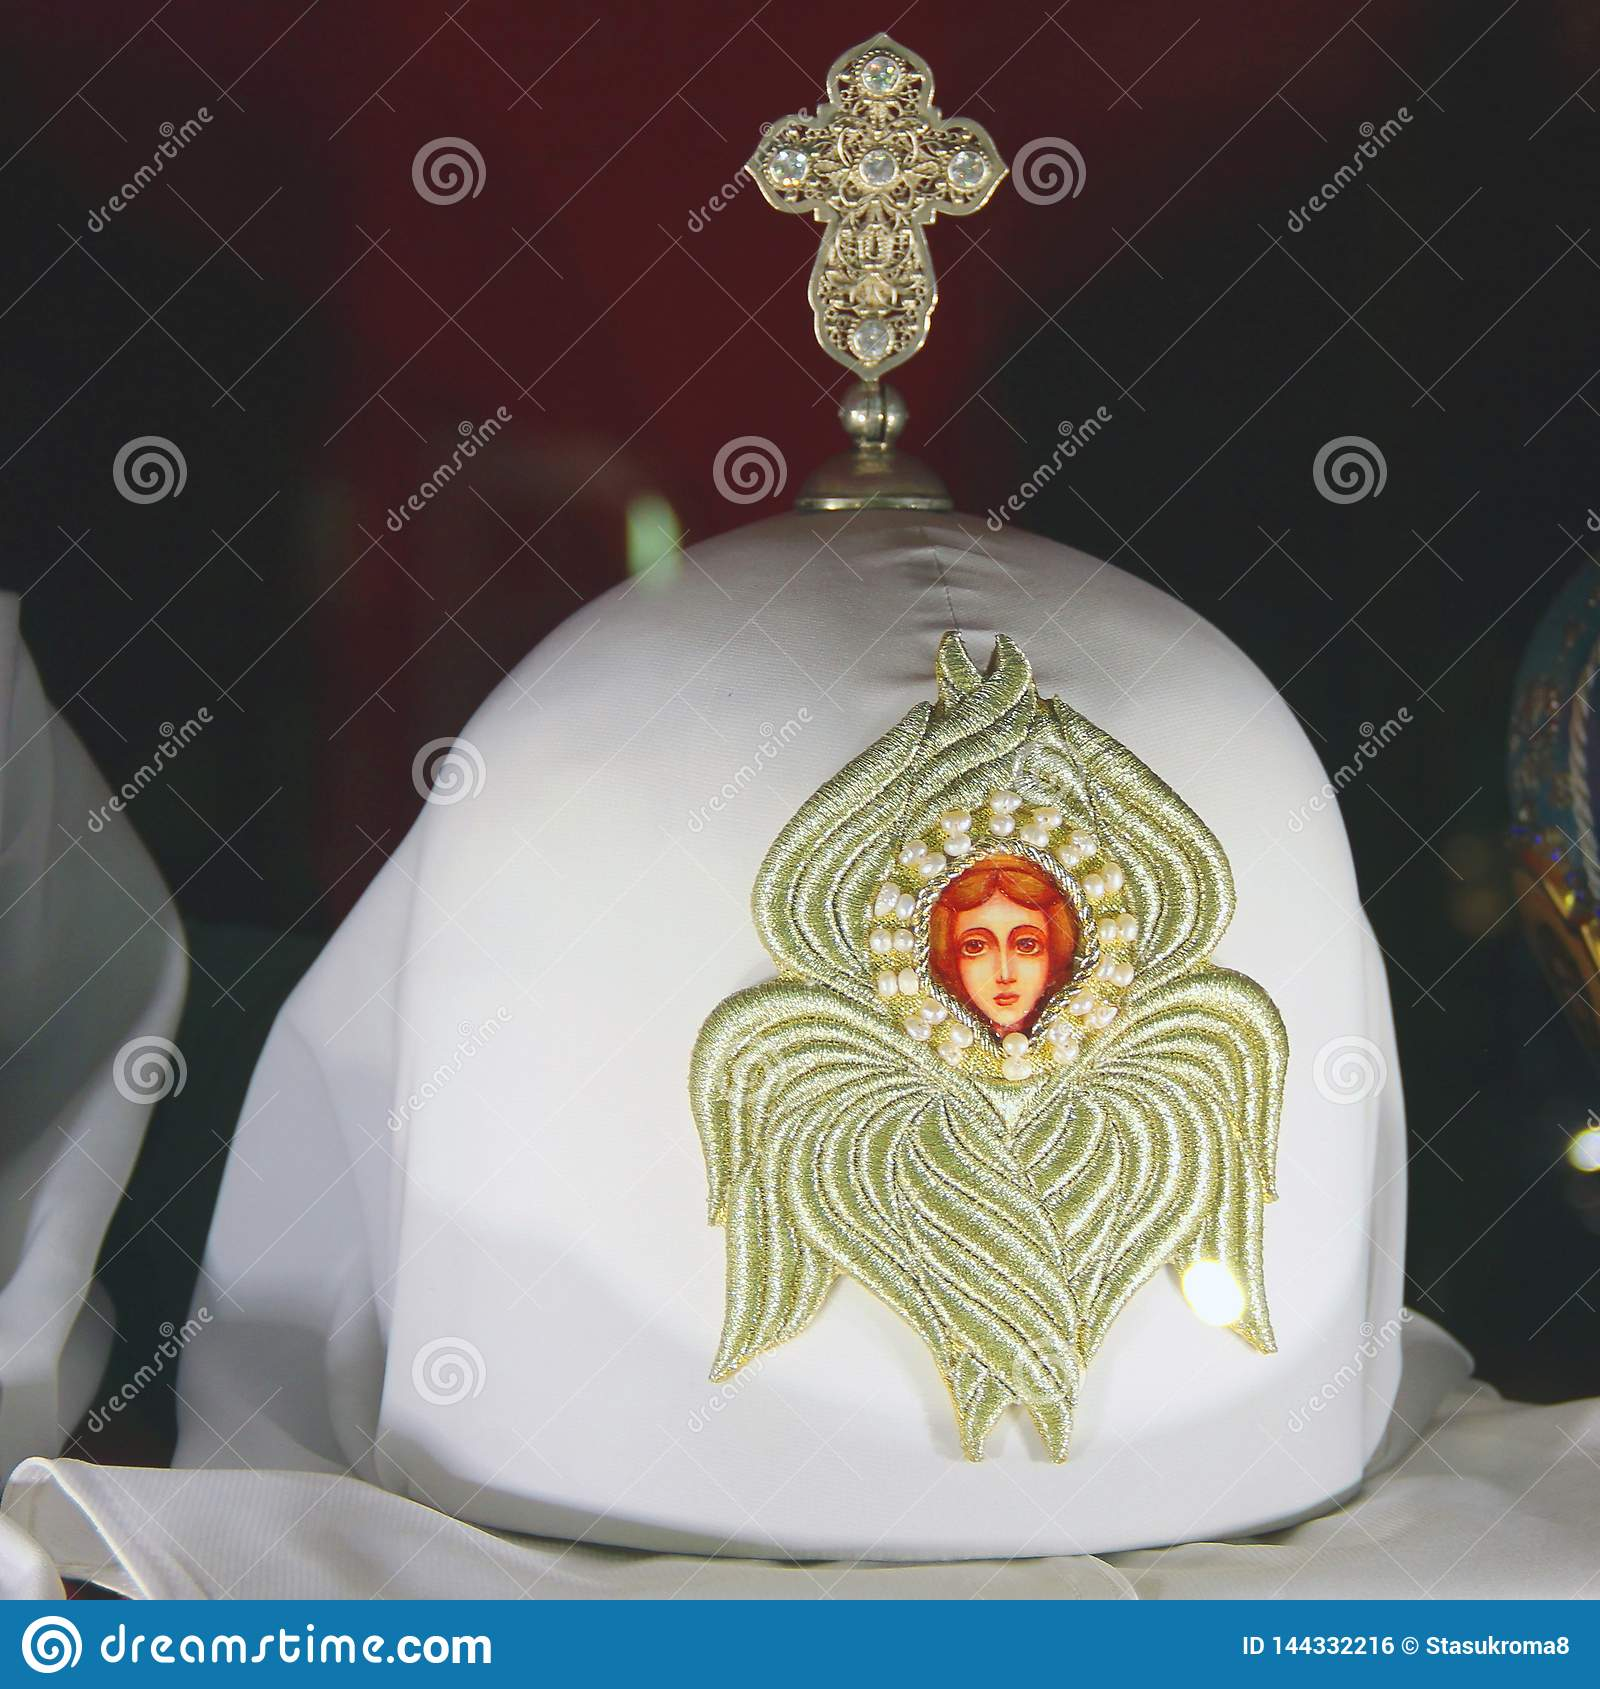 Headdresses of priests on a red background